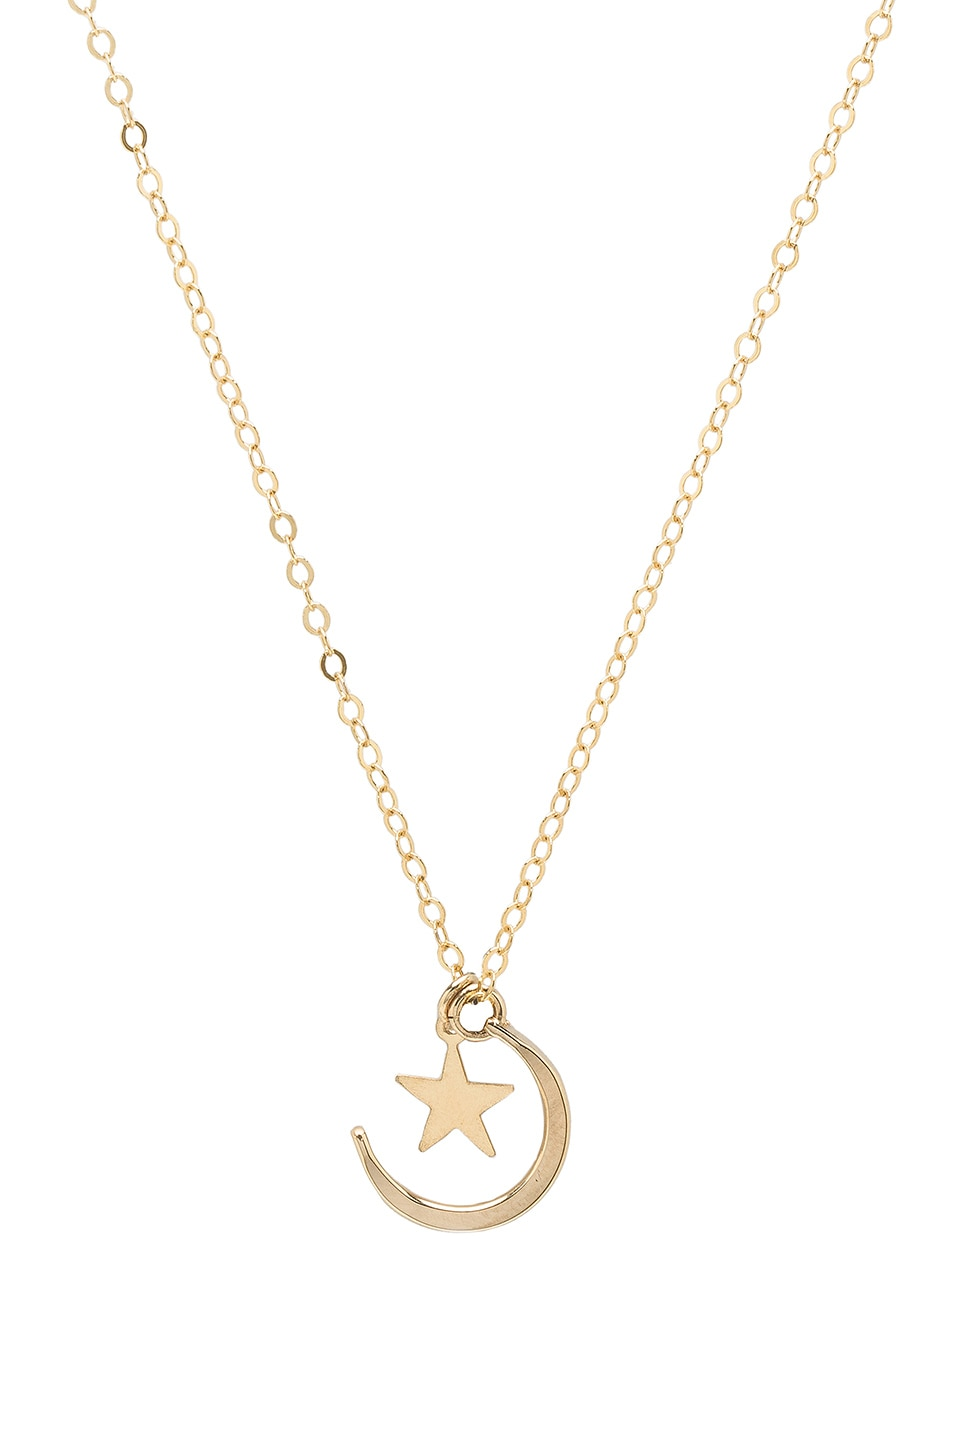 PARADIGM MOON & STONE NECKLACE